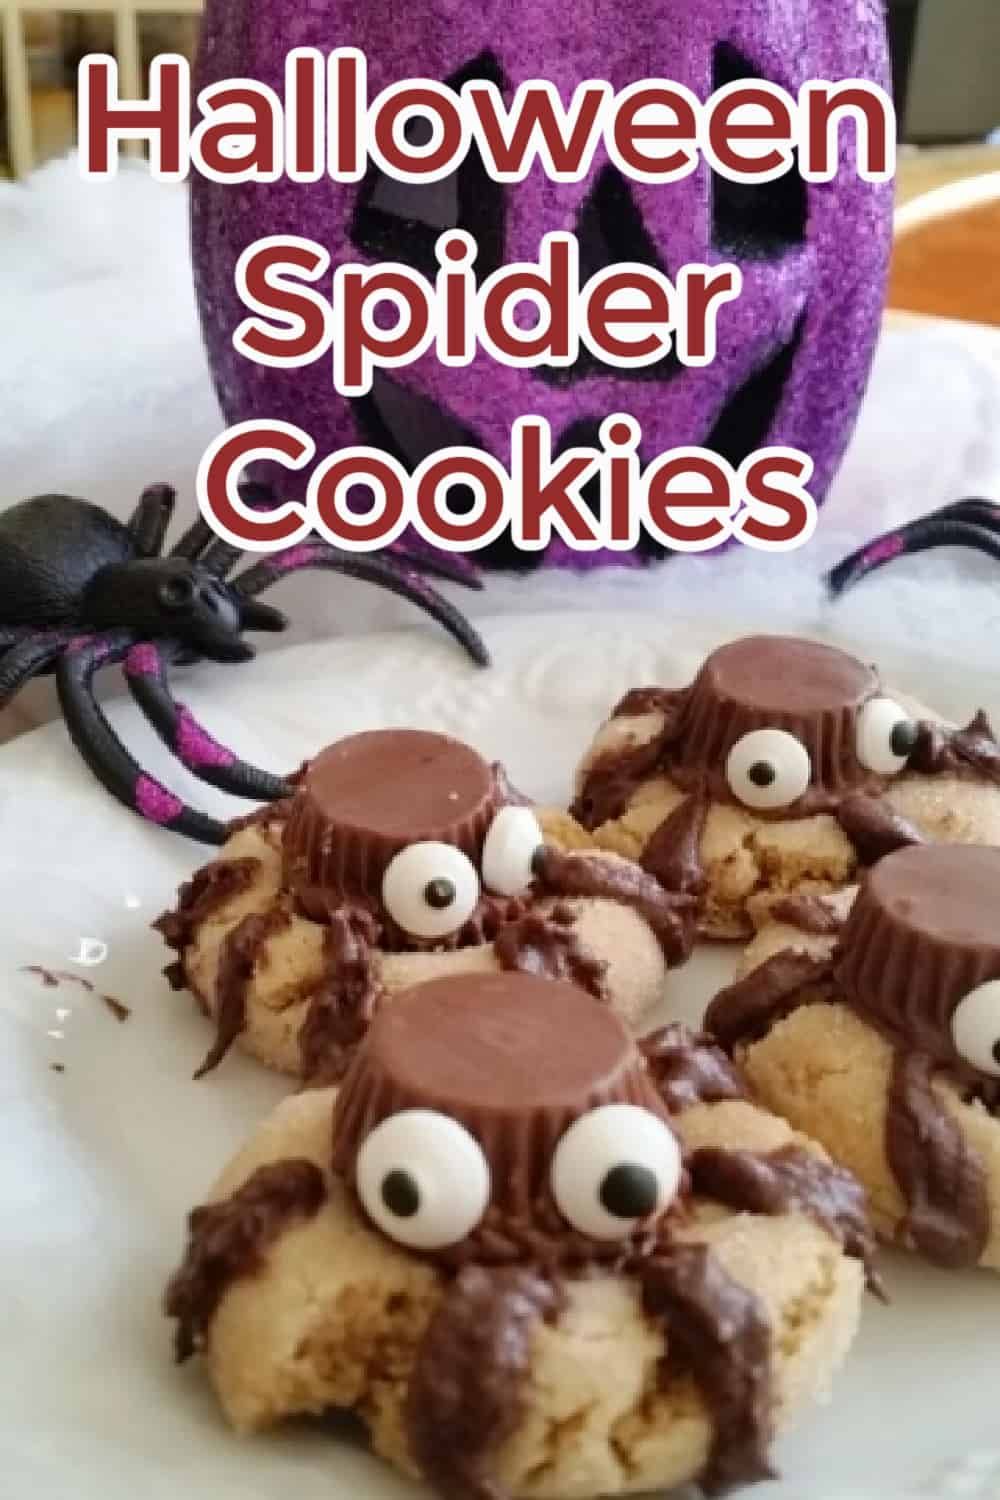 Halloween Spider Cookies: Chocolate Peanut Butter Halloween Cookies. A yummy peanut butter cookie with a chocolate peanut butter cup face and chocolate legs. This cookie will be a hit at your Halloween Party! via @Mooreorlesscook